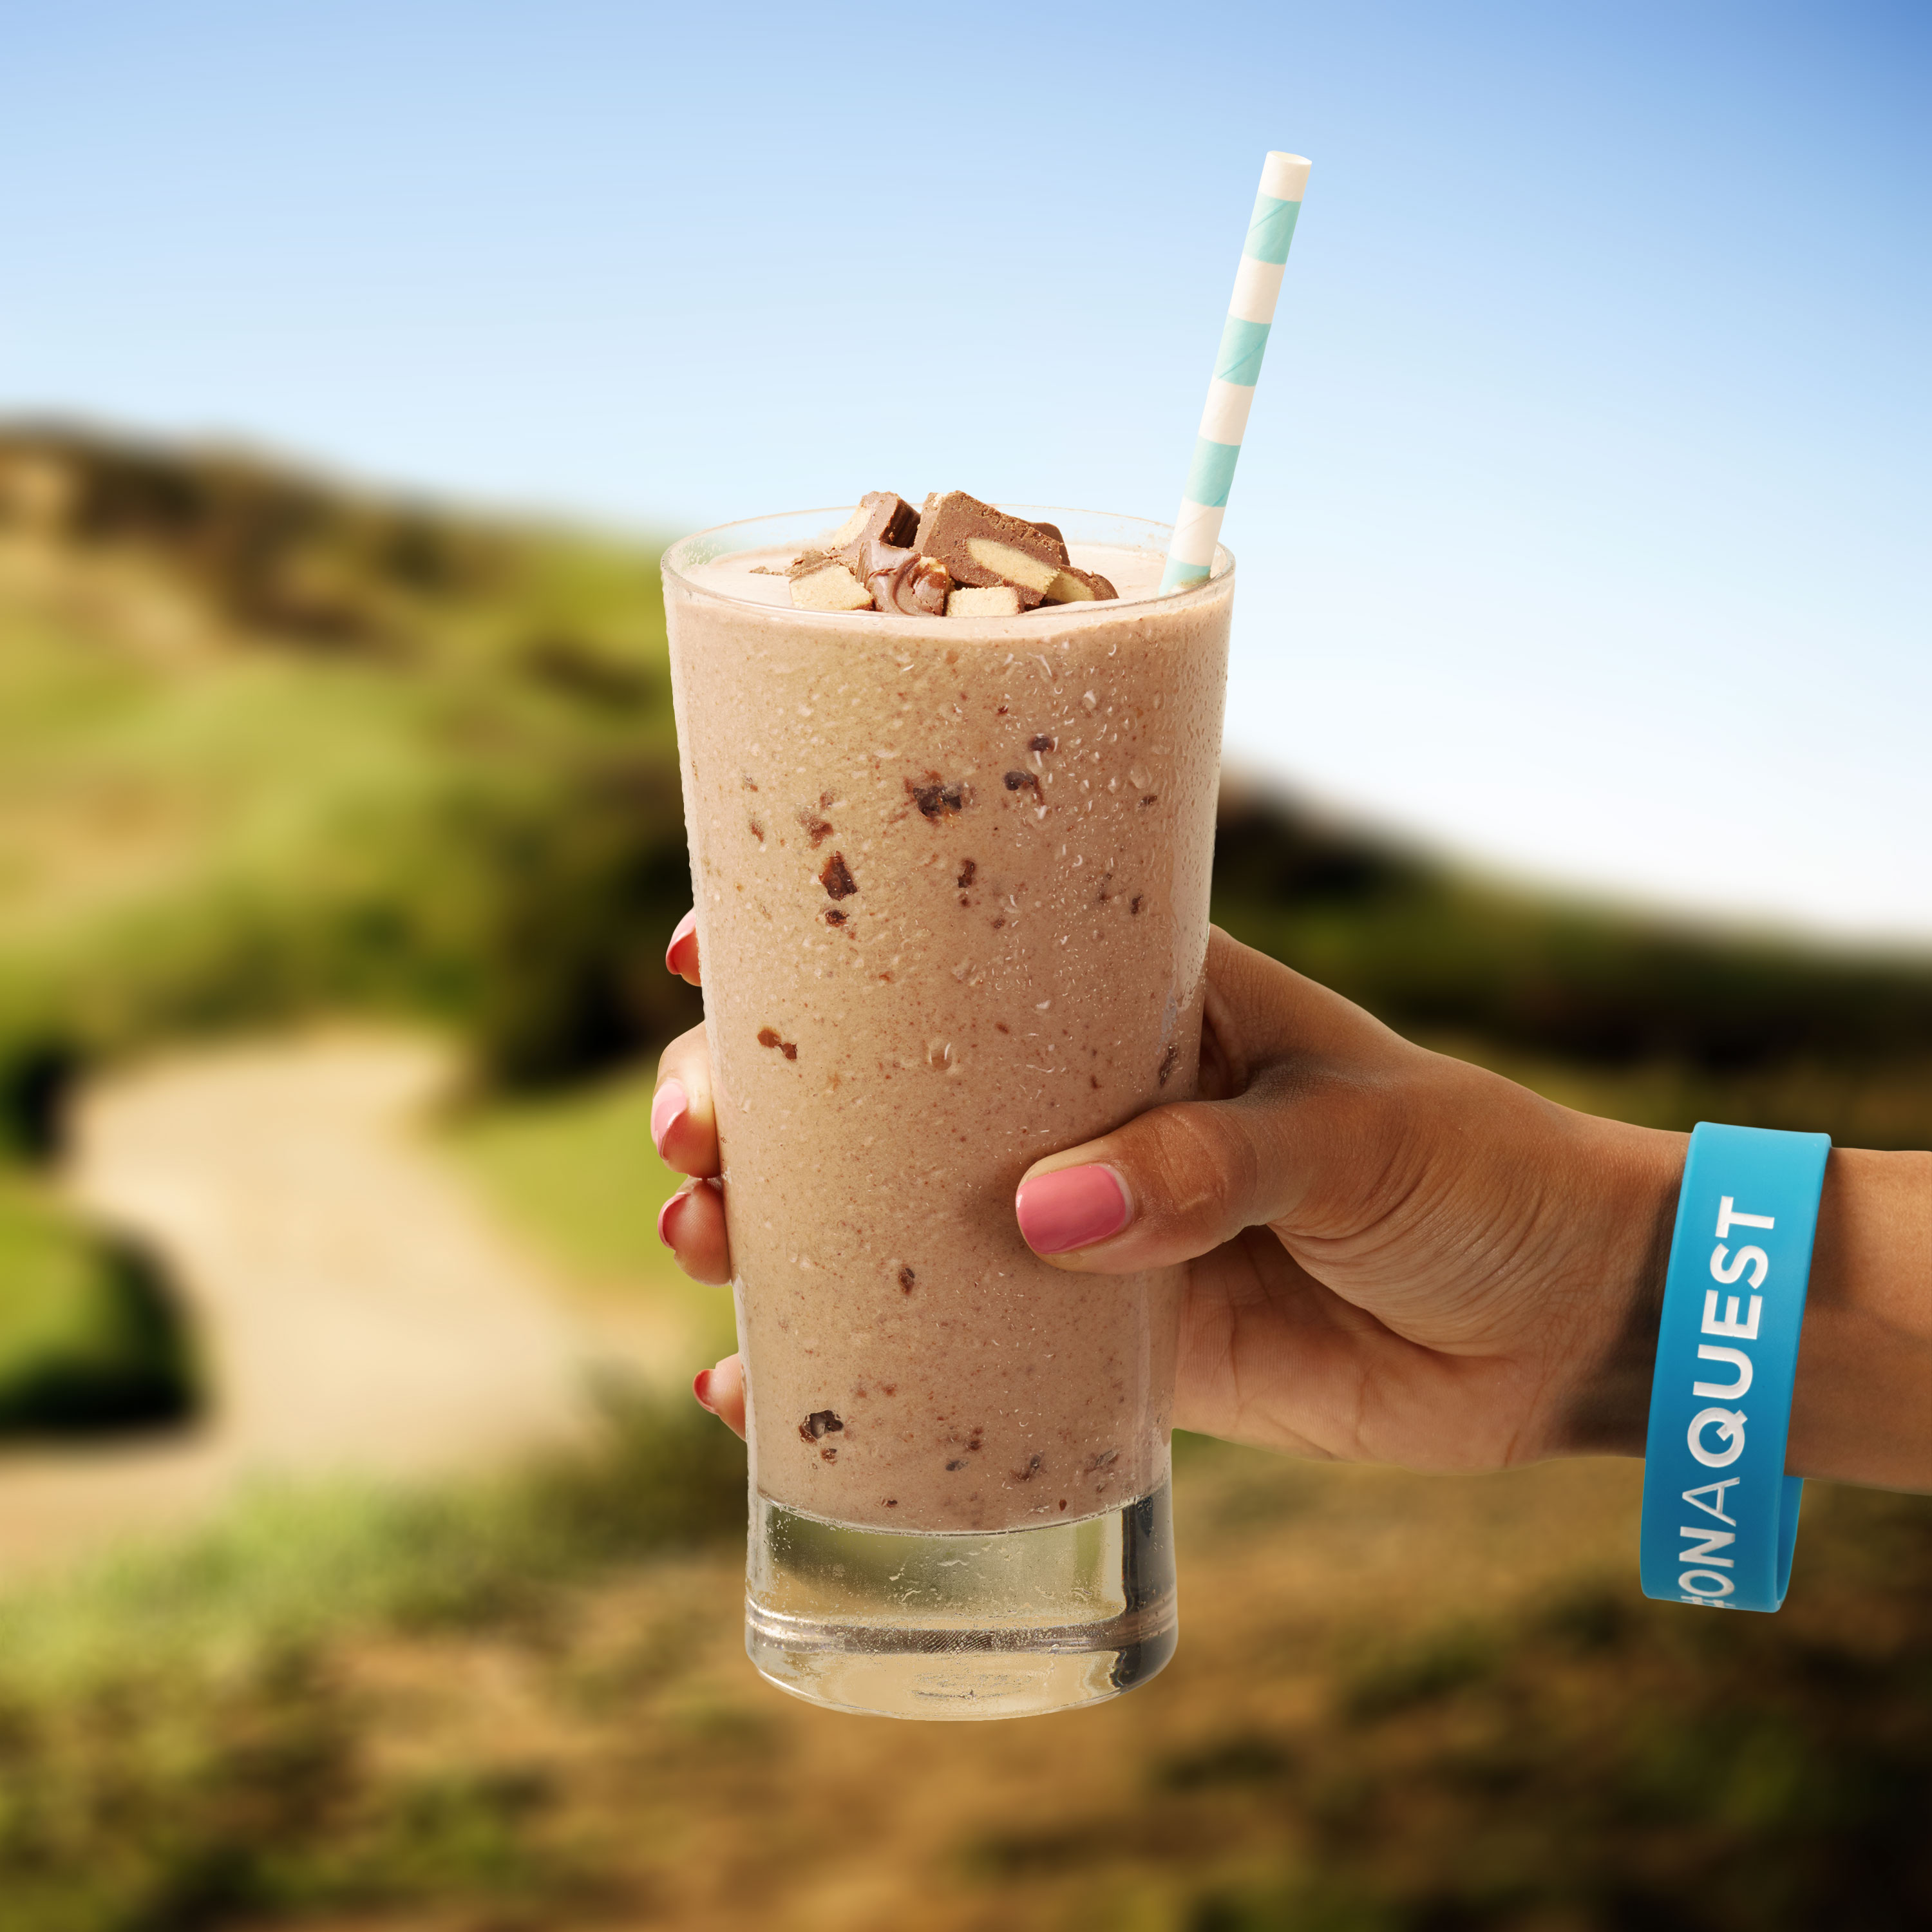 Quest Nutrition Peanut Butter Cup Shake